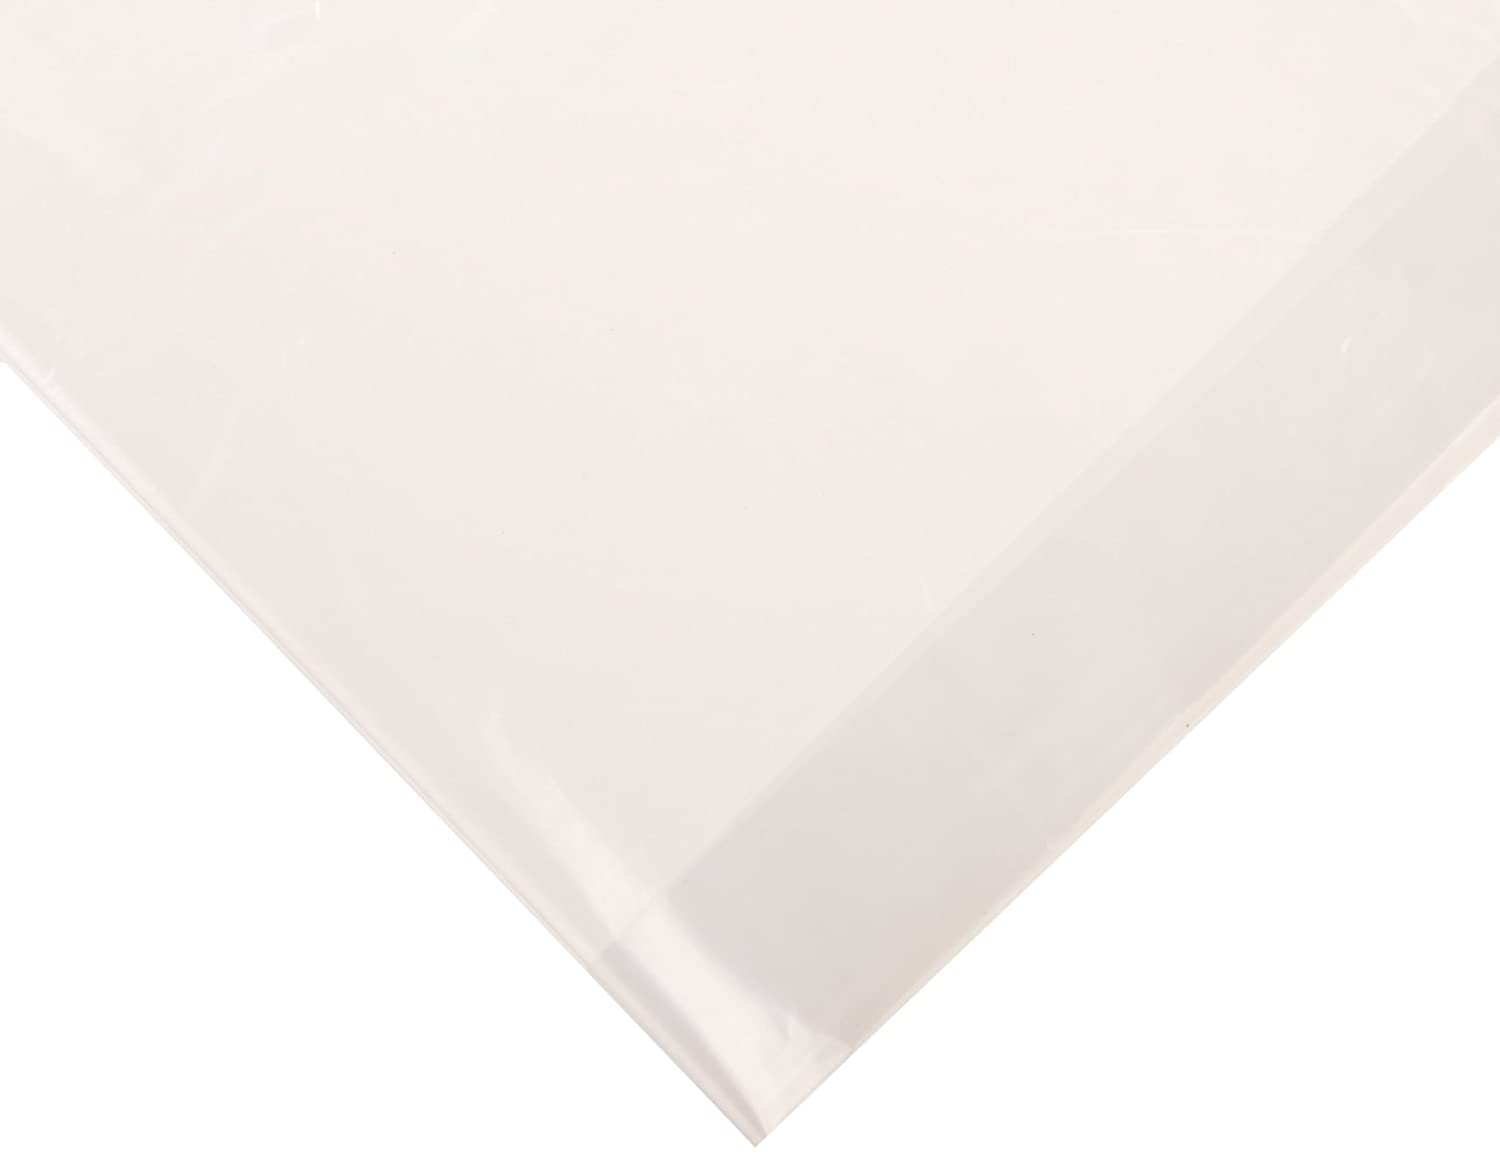 Bauxko 26 x 4 x 42 Gusseted Poly Bags 2 Mil xPB1641-25 25-Pack